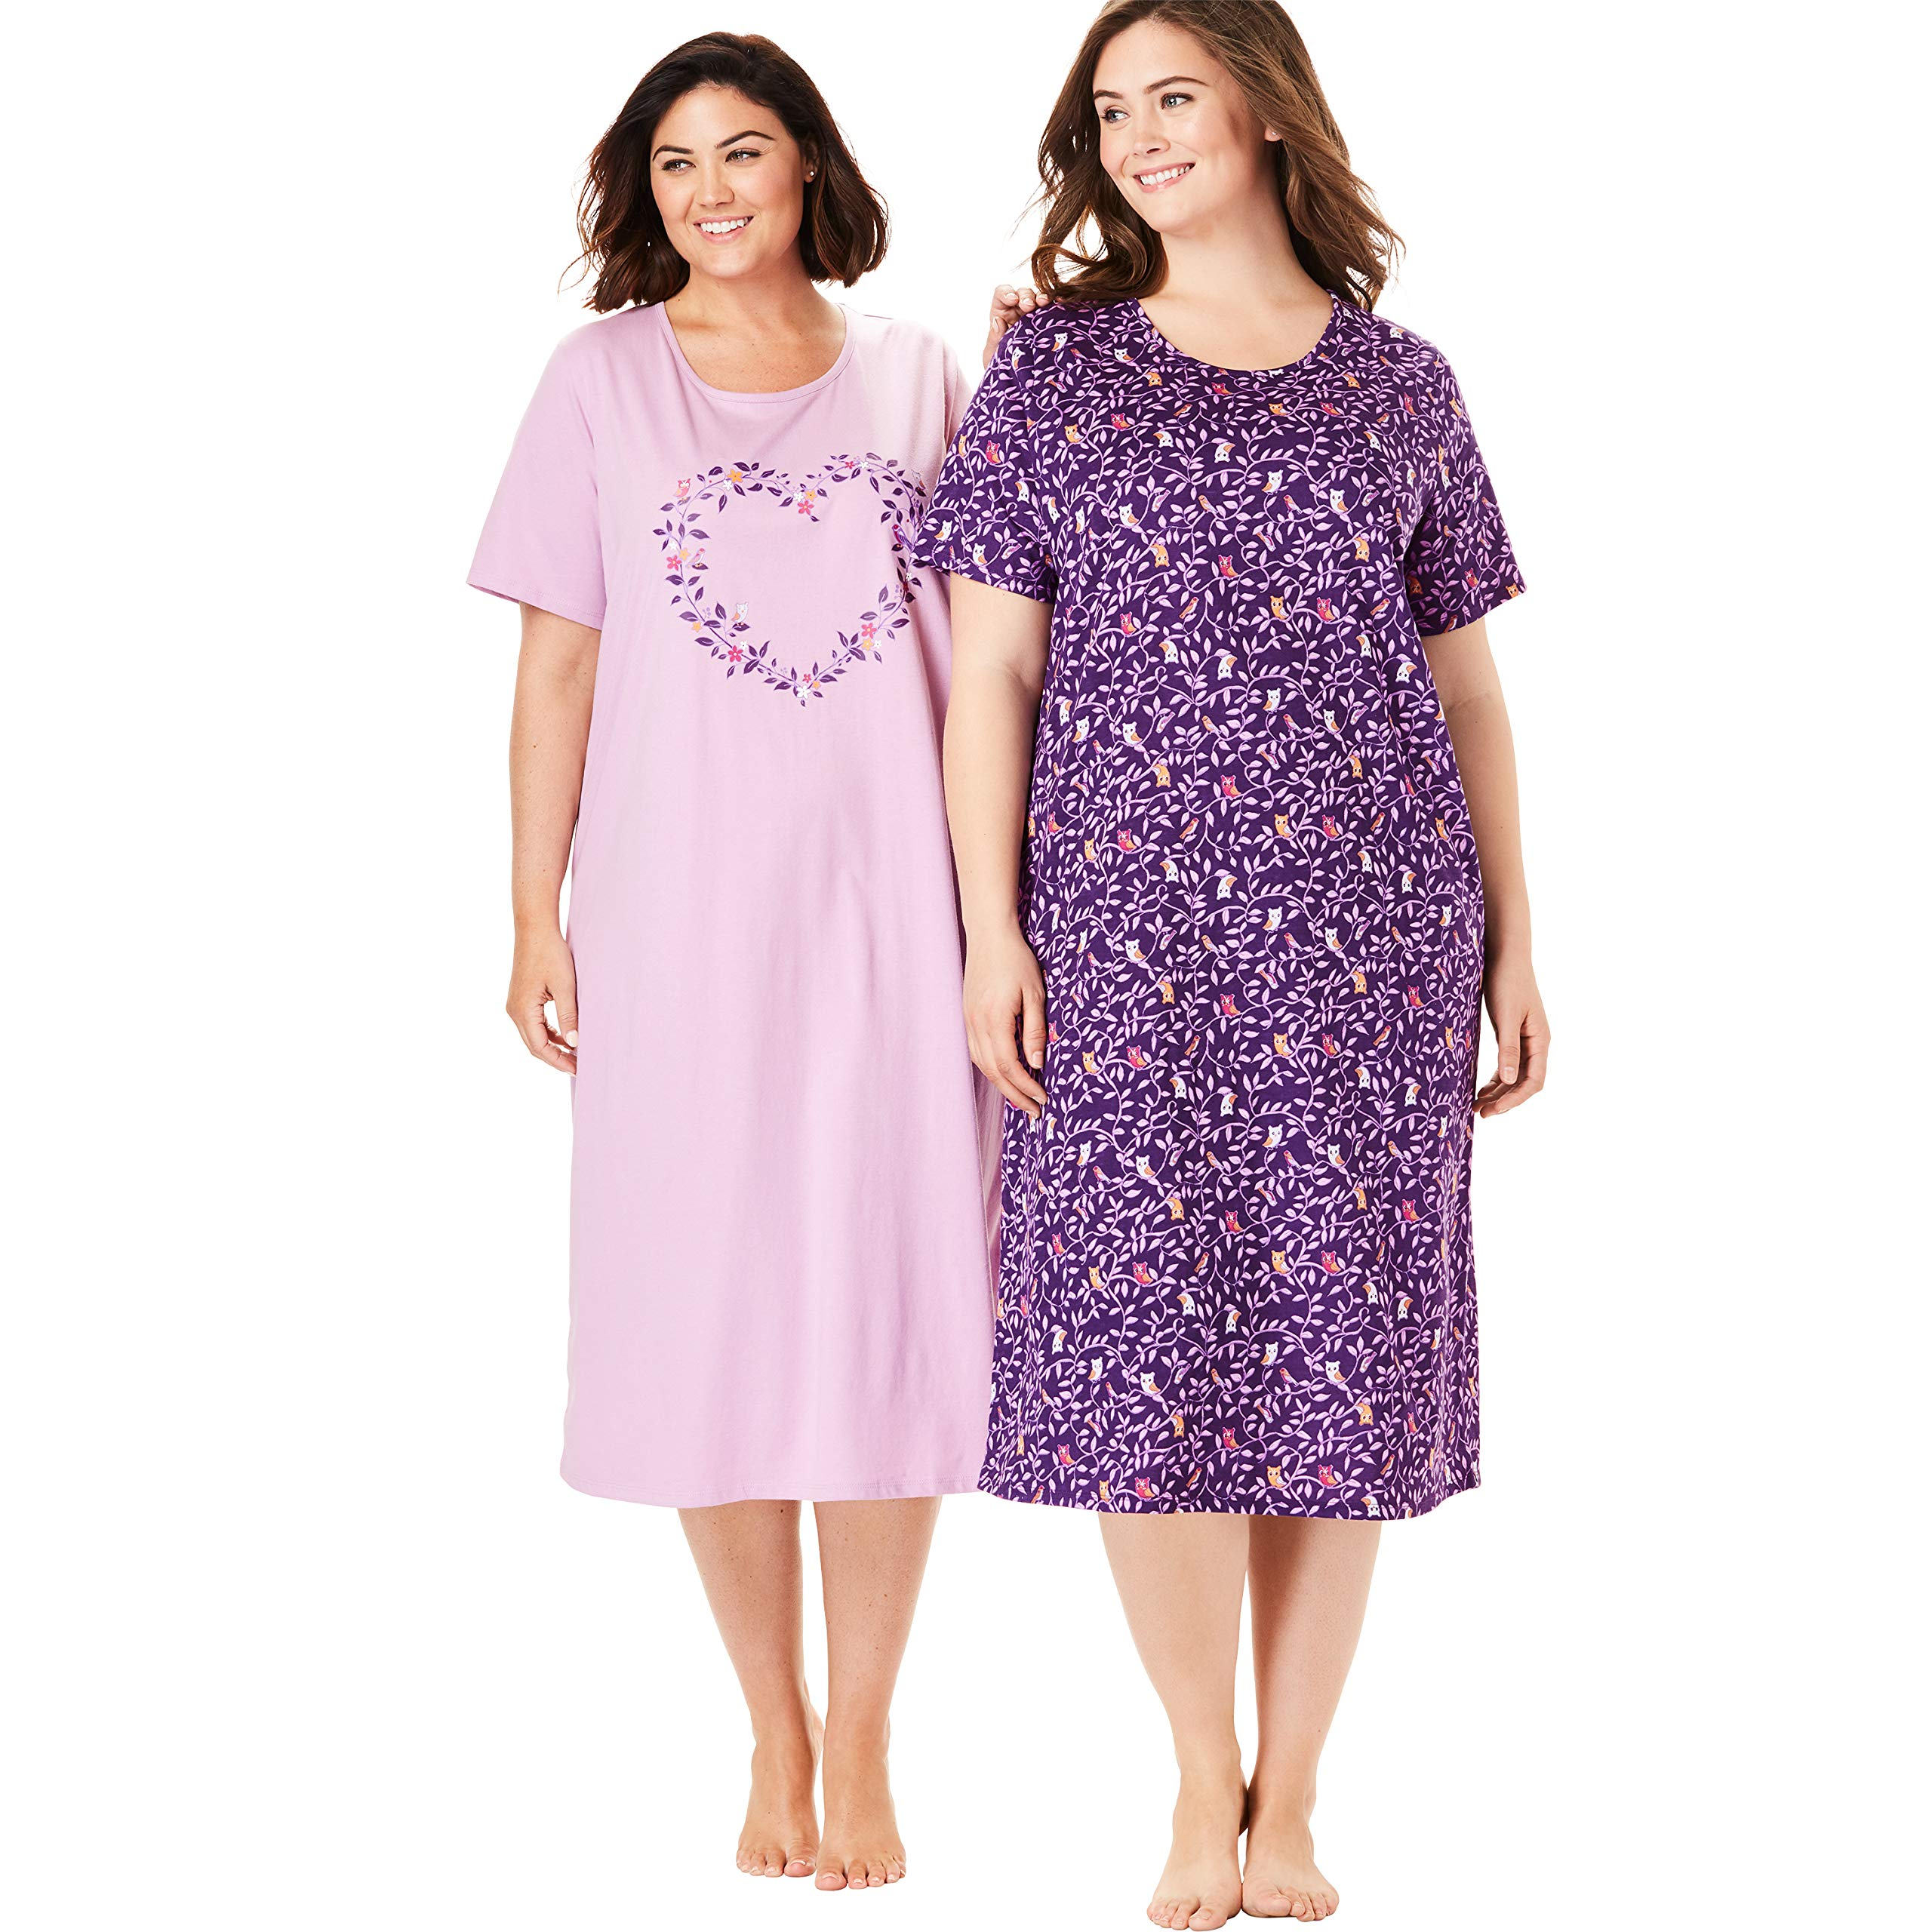 Dreams & Co. Women's Plus Size 2-Pack Long Sleepshirts - Rich Violet Owl, 3X/4X by Dreams & Co.